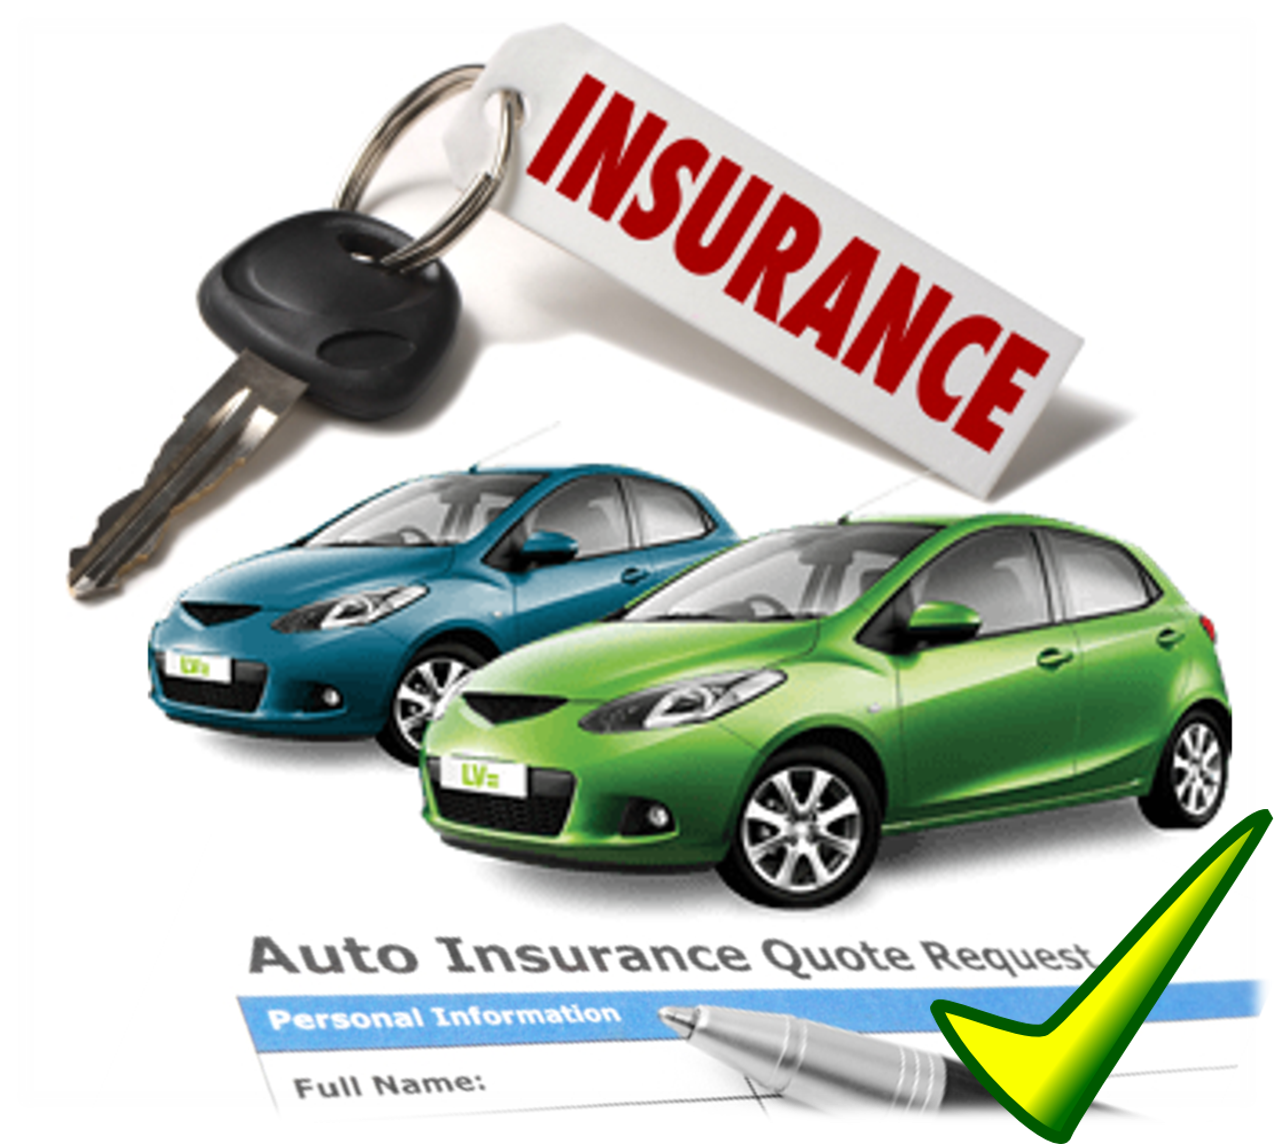 Insurance Quotes For Car: Online Car Insurance Quotes, Free Online Auto Insurance Quotes